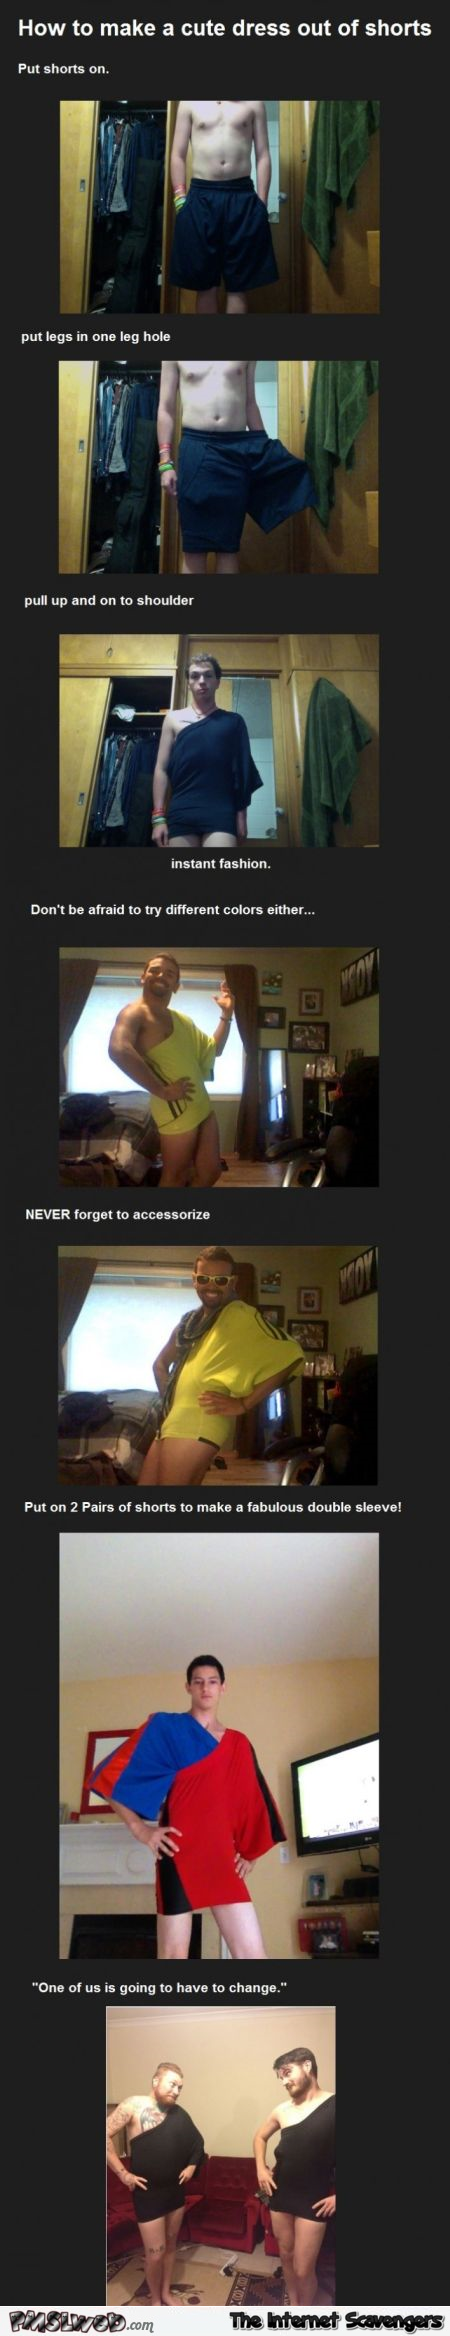 How to make a cute dress out of shorts humor at PMSLweb.com